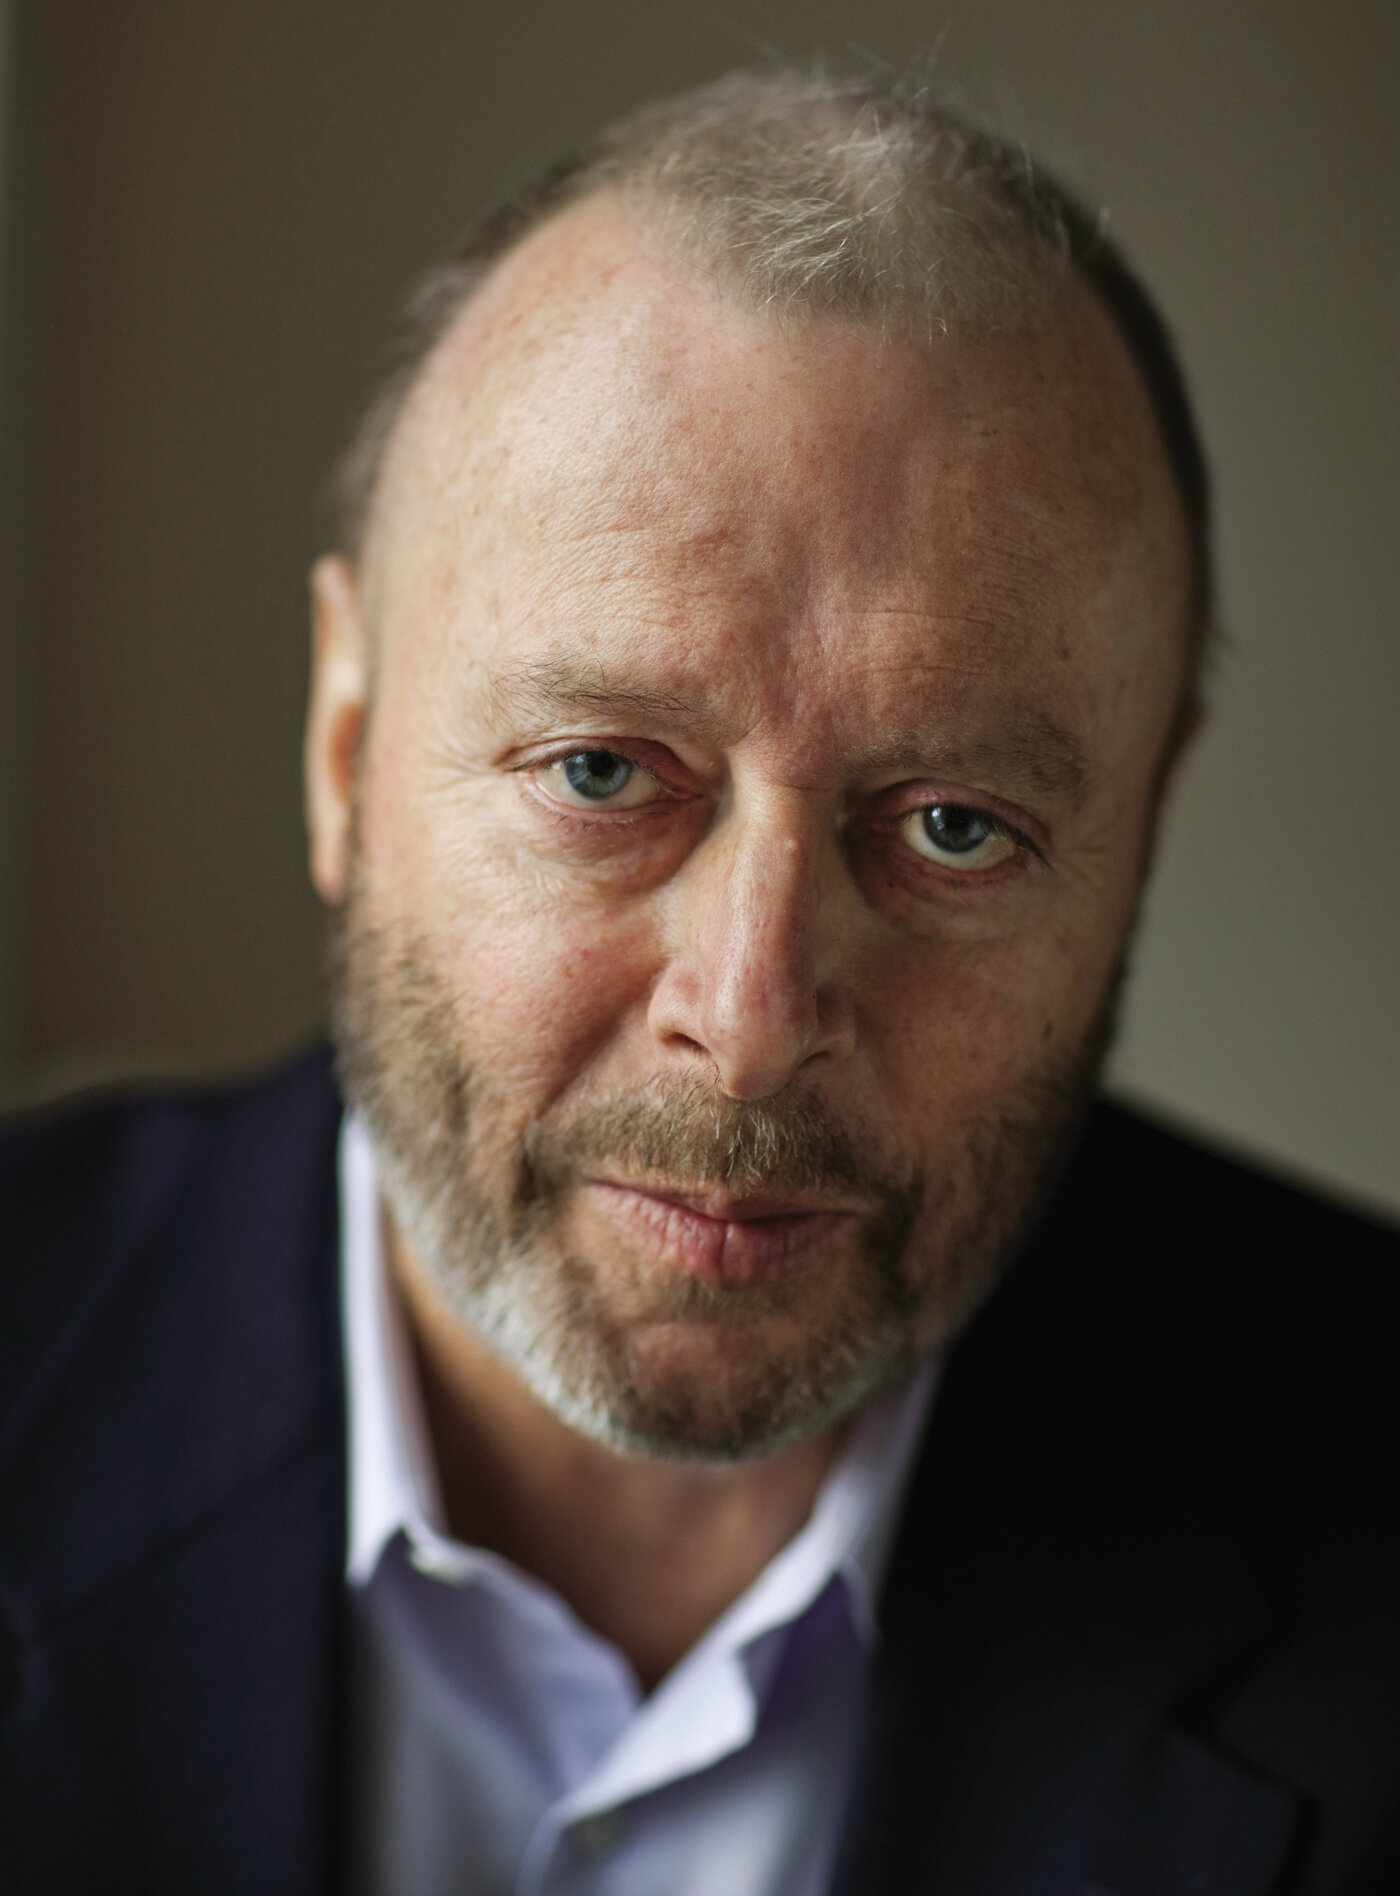 Christopher Hitchens Dies of Esophageal Cancer at 62